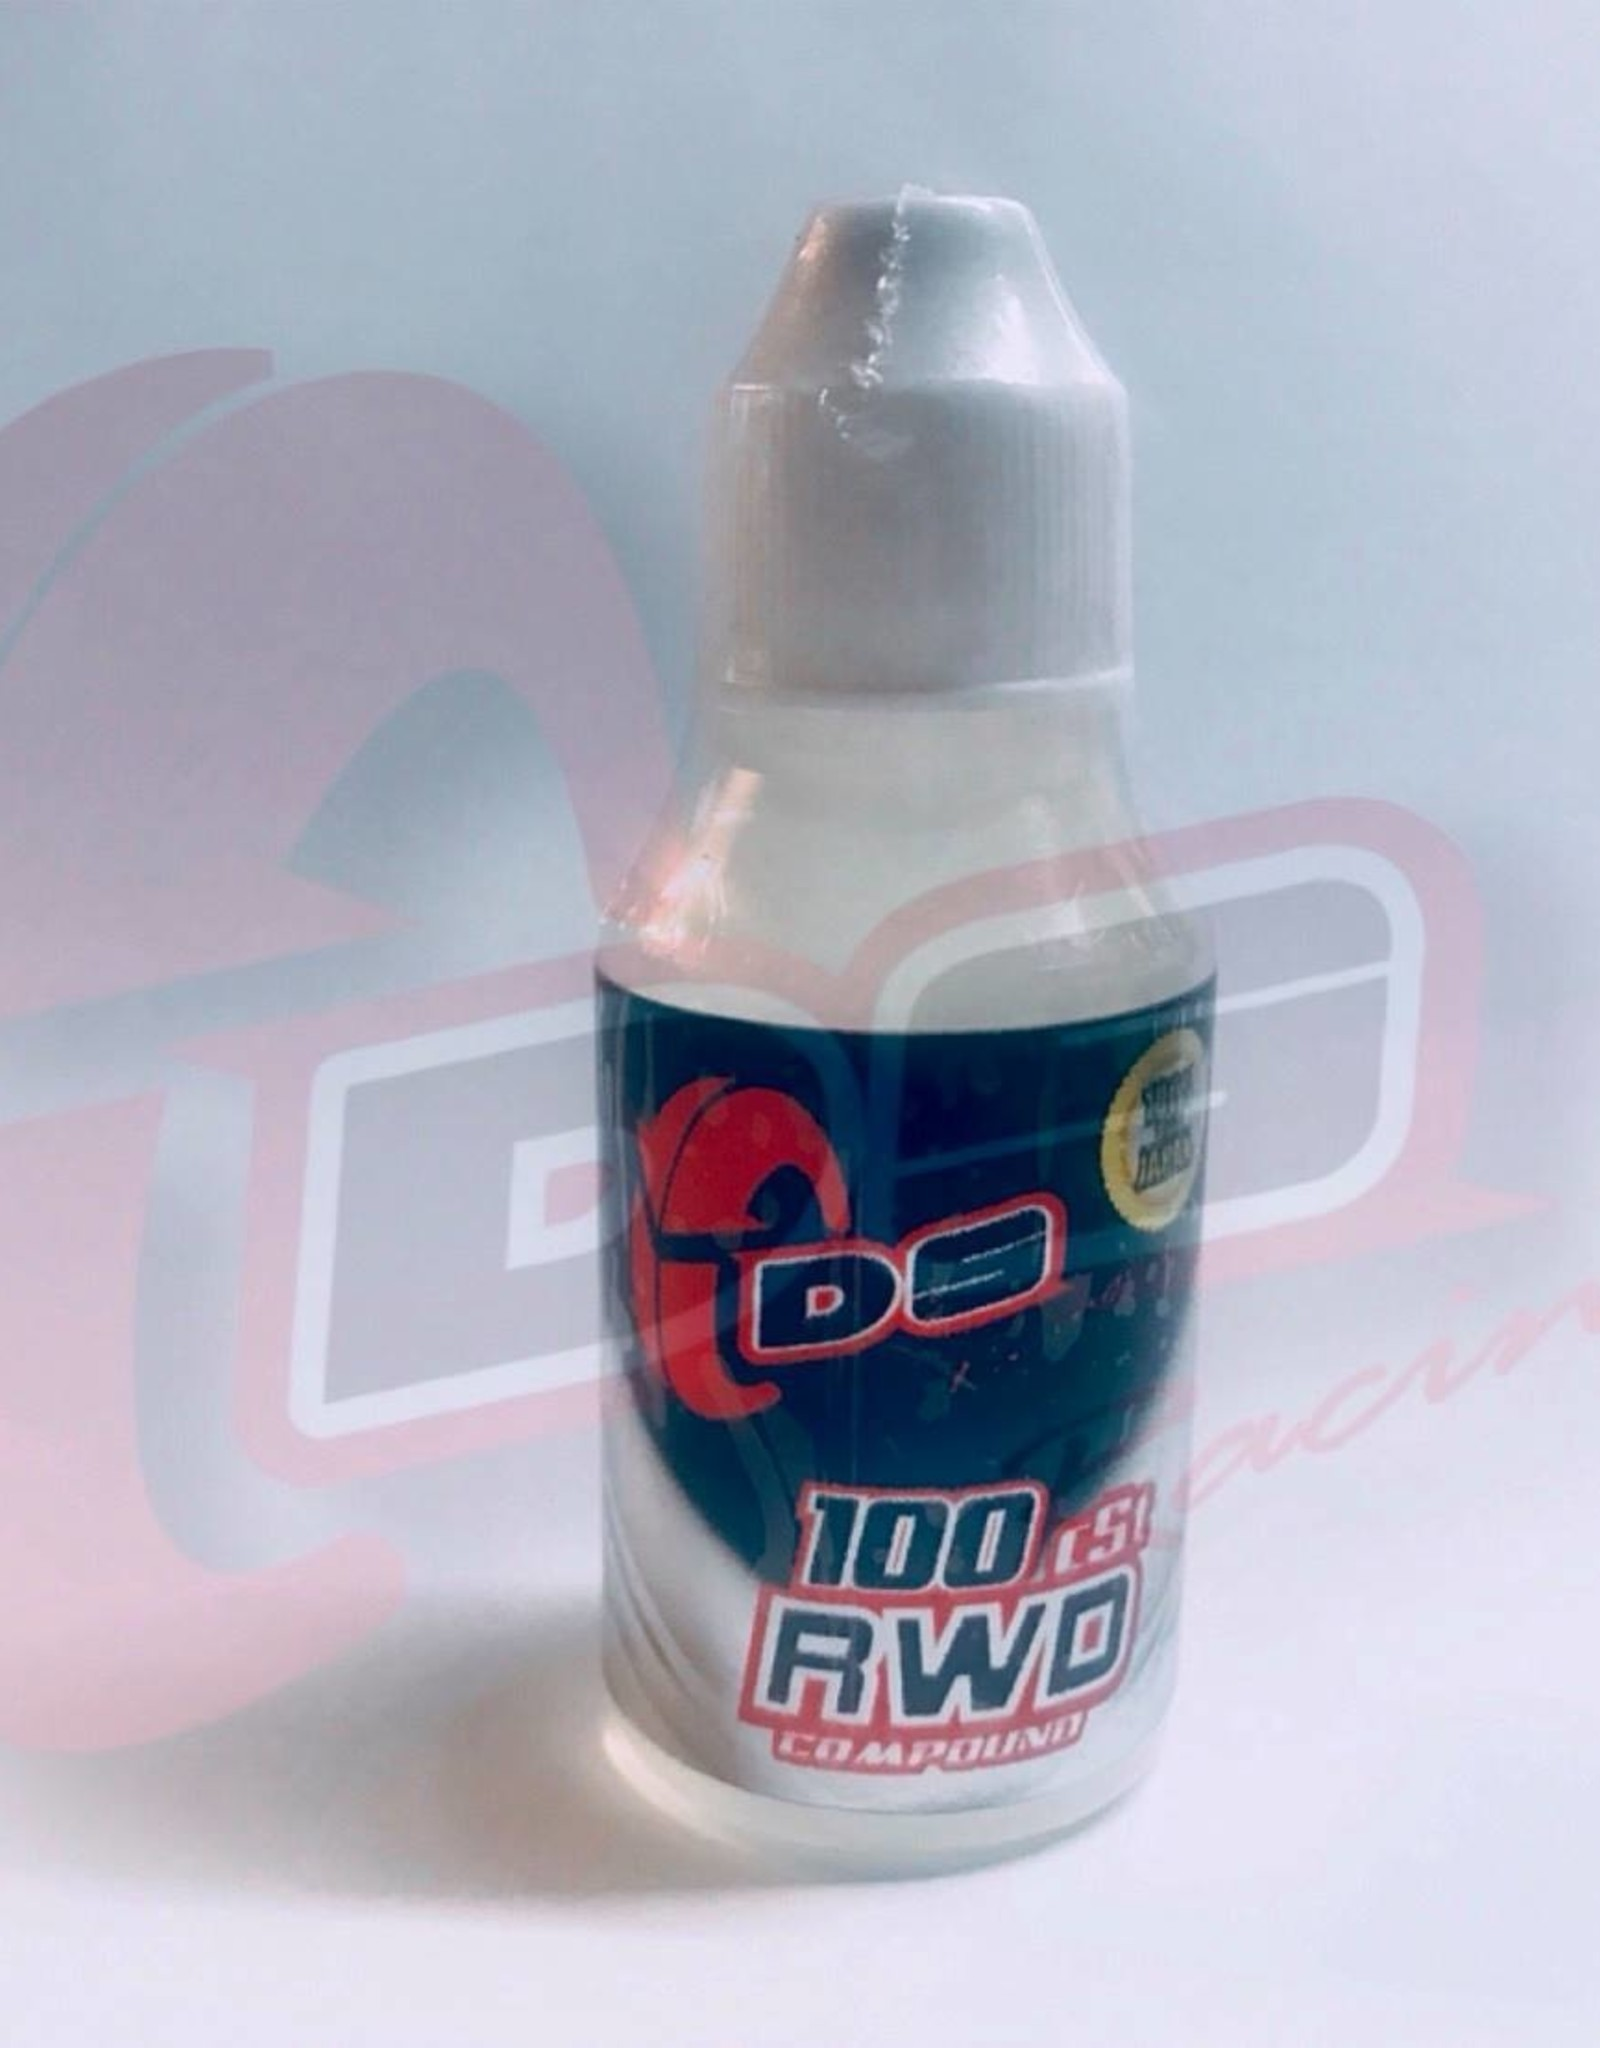 DS Racing SU-003RW RWD Shock Oil 100cSt by DS Racing